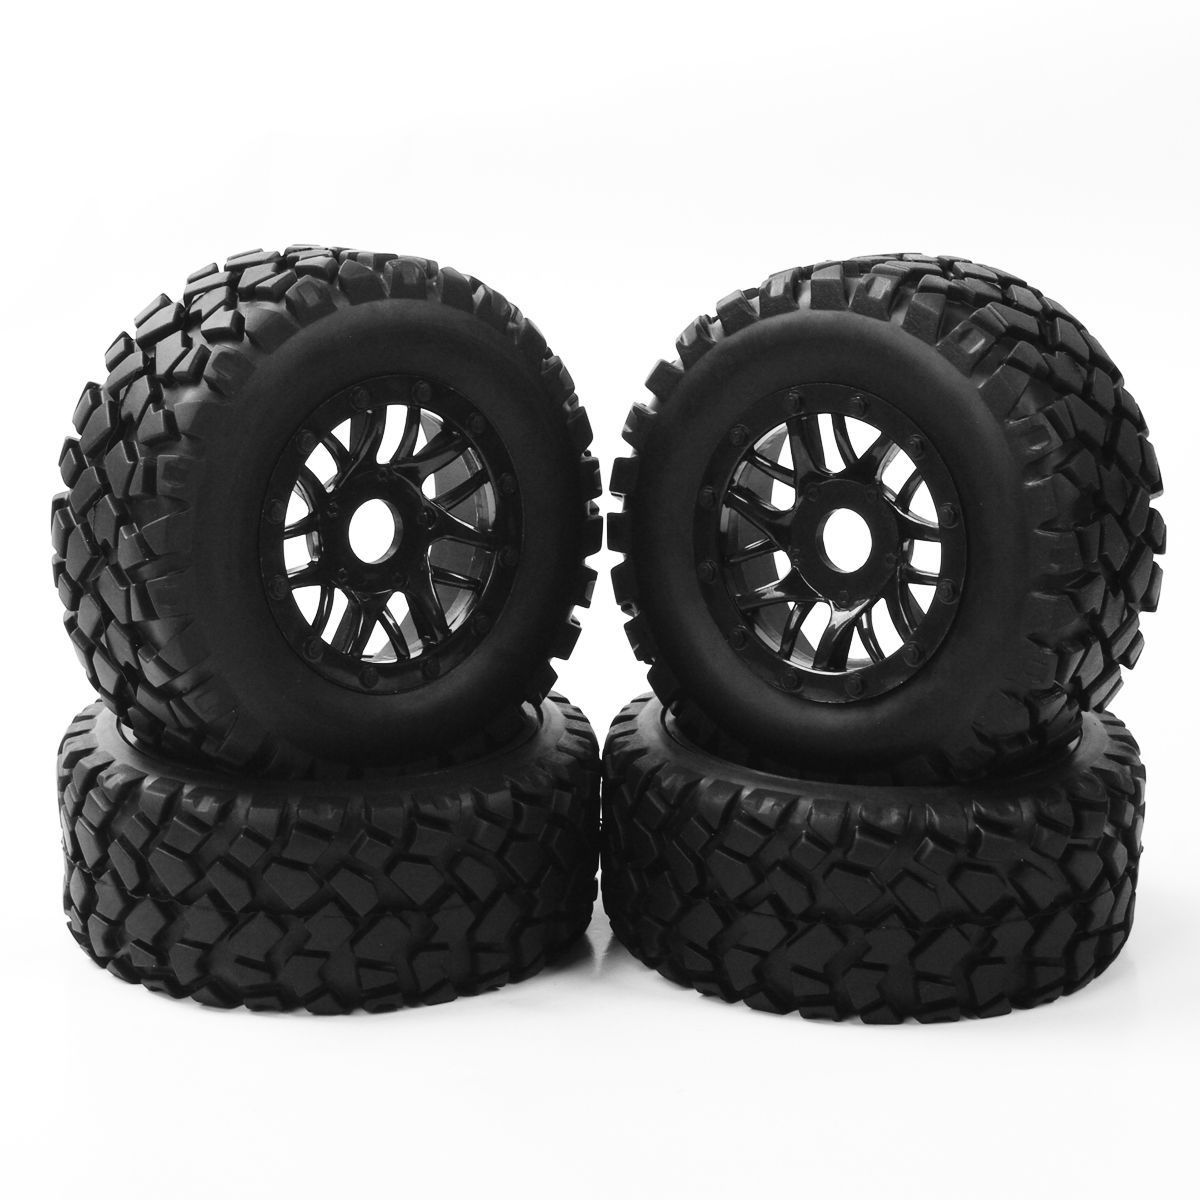 4Pcs 17mm Hex 1:10 Short Course Truck Tires&Wheel for RC Traxxas SLASH Tyre by RUIBAITE